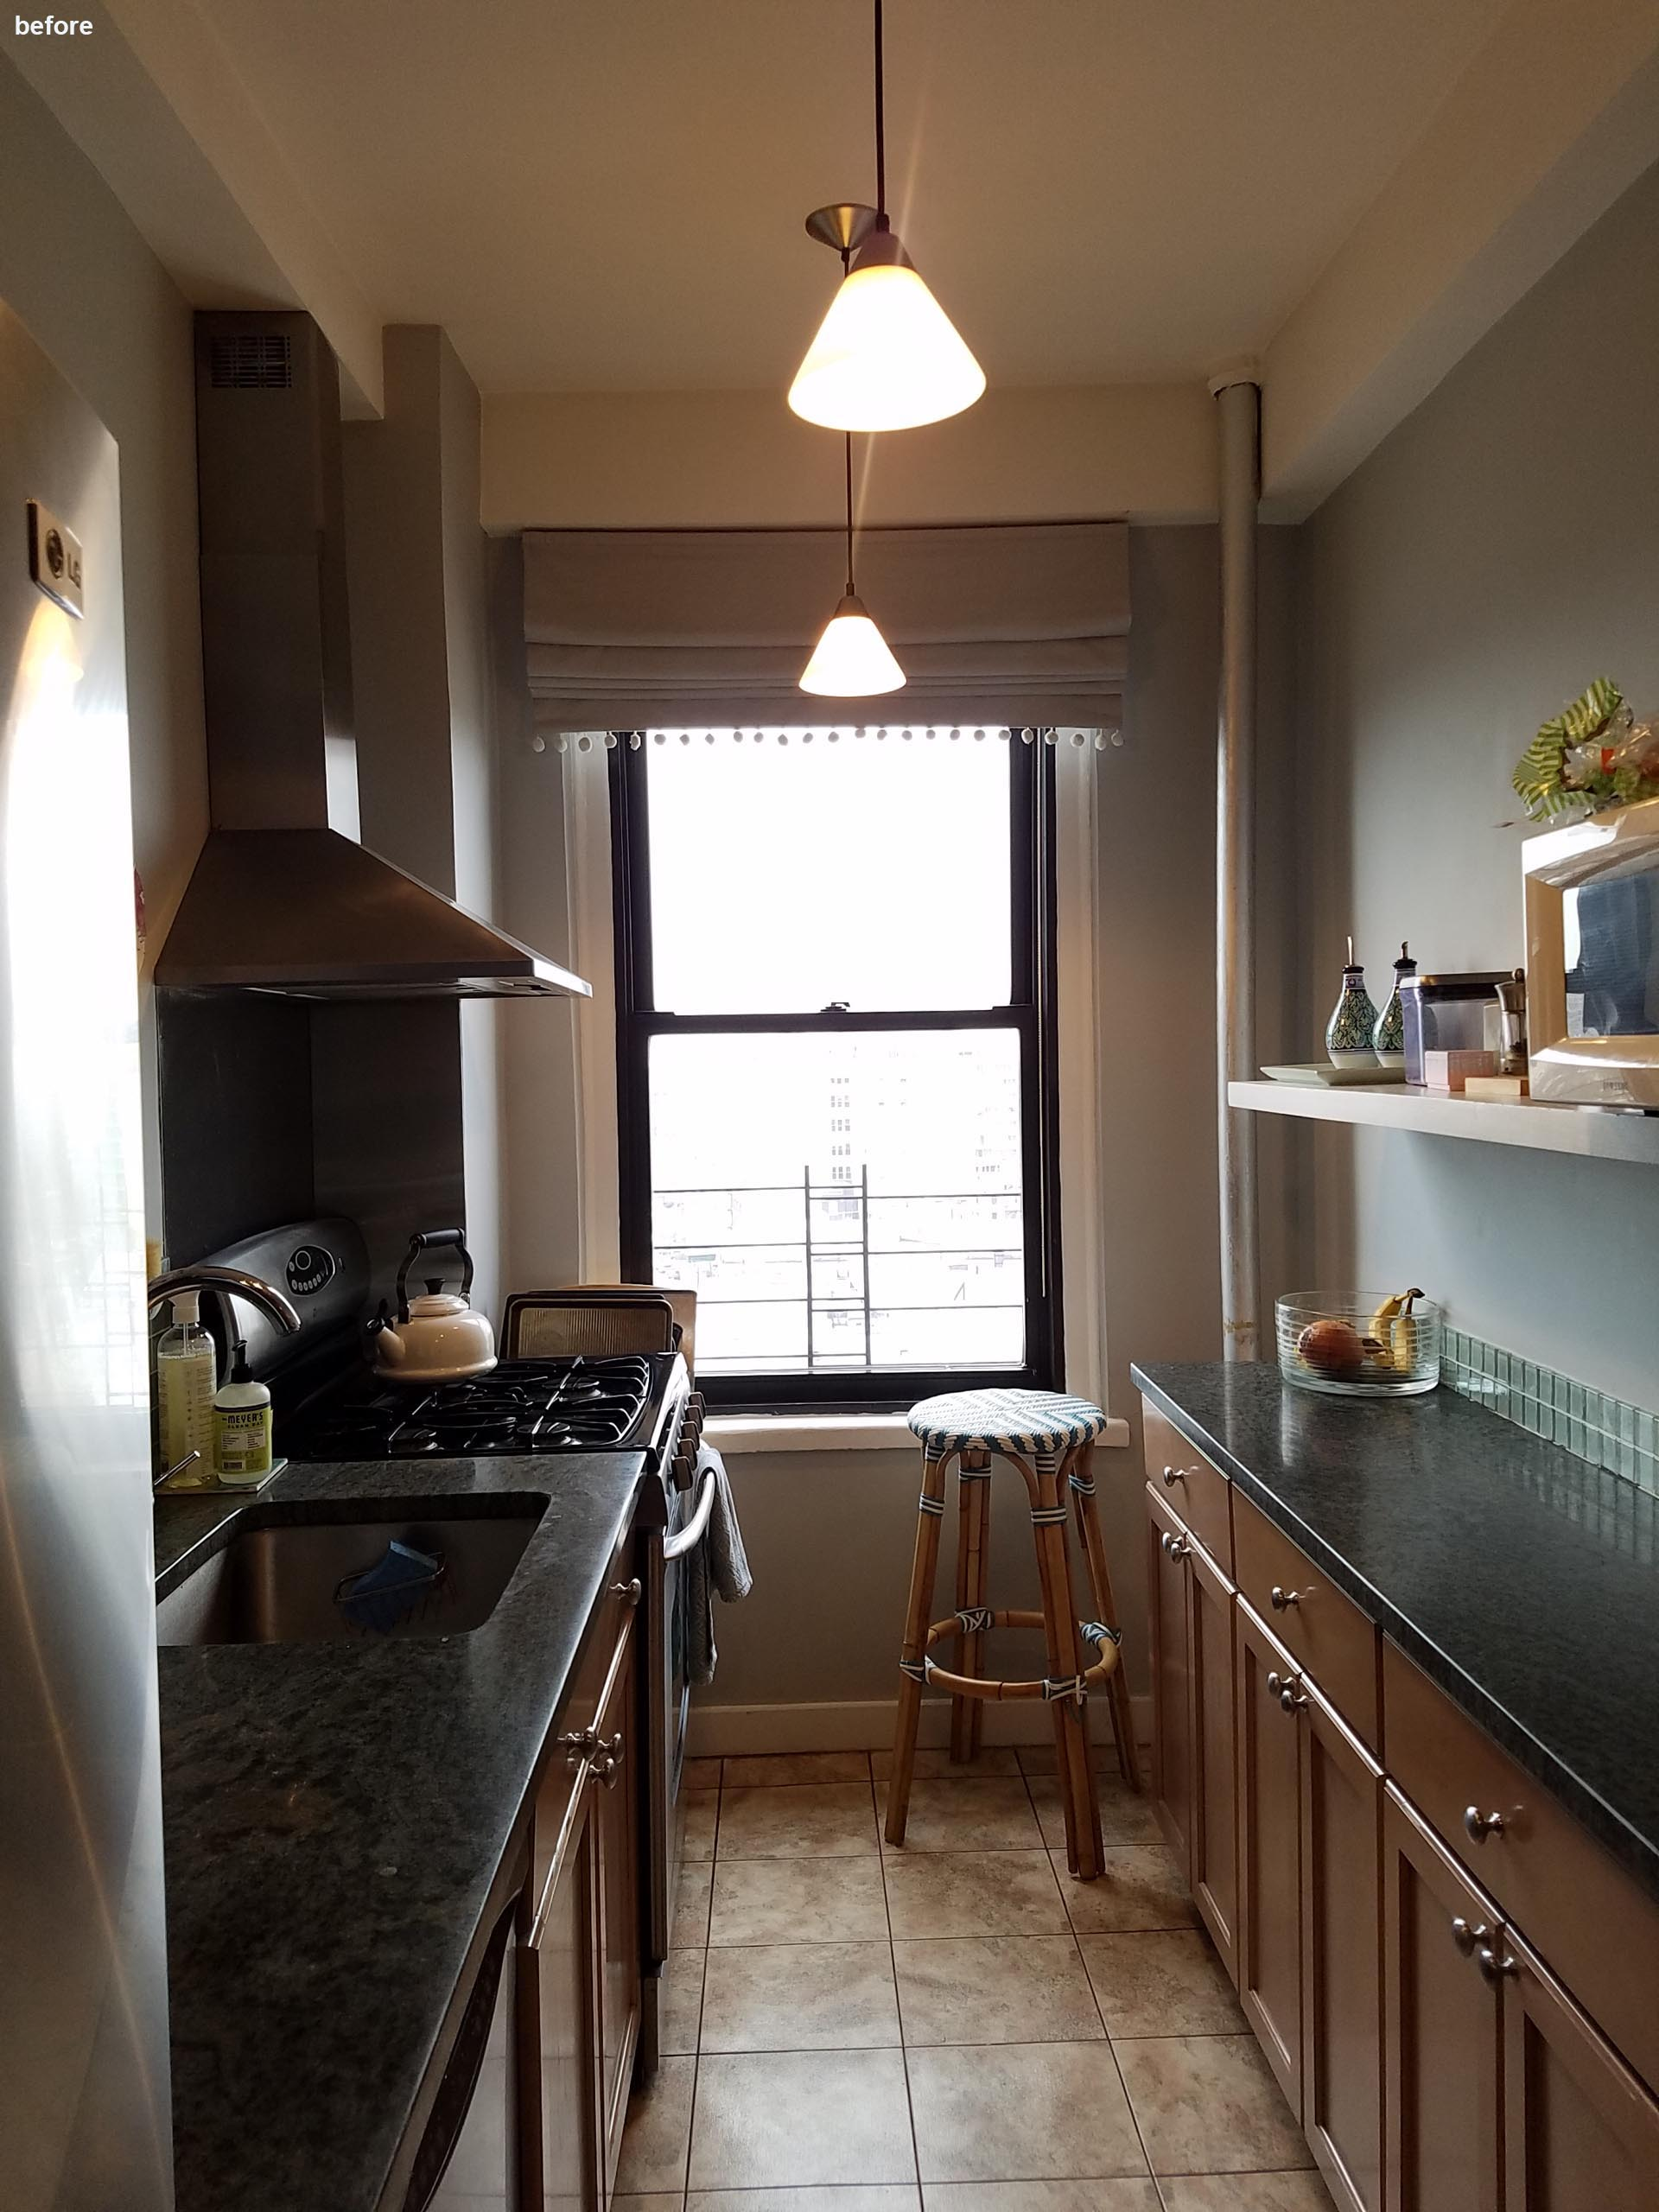 Before photo - a small kitchen with wood cabinets and a dark countertop.